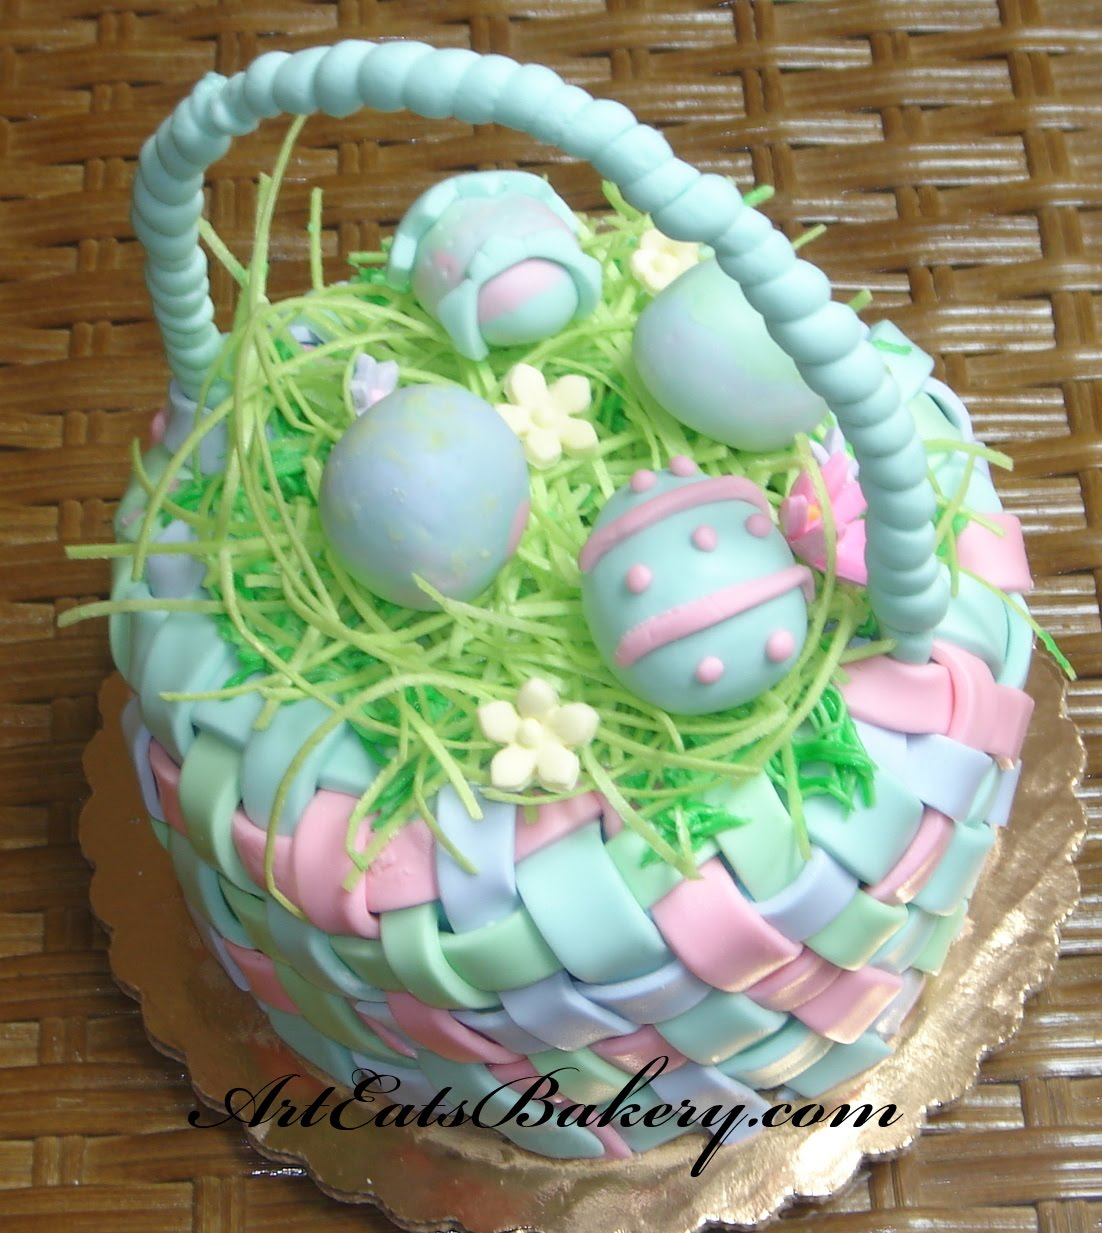 Easter Cake Design Ideas : Art Eats Bakery custom fondant wedding and birthday cake ...